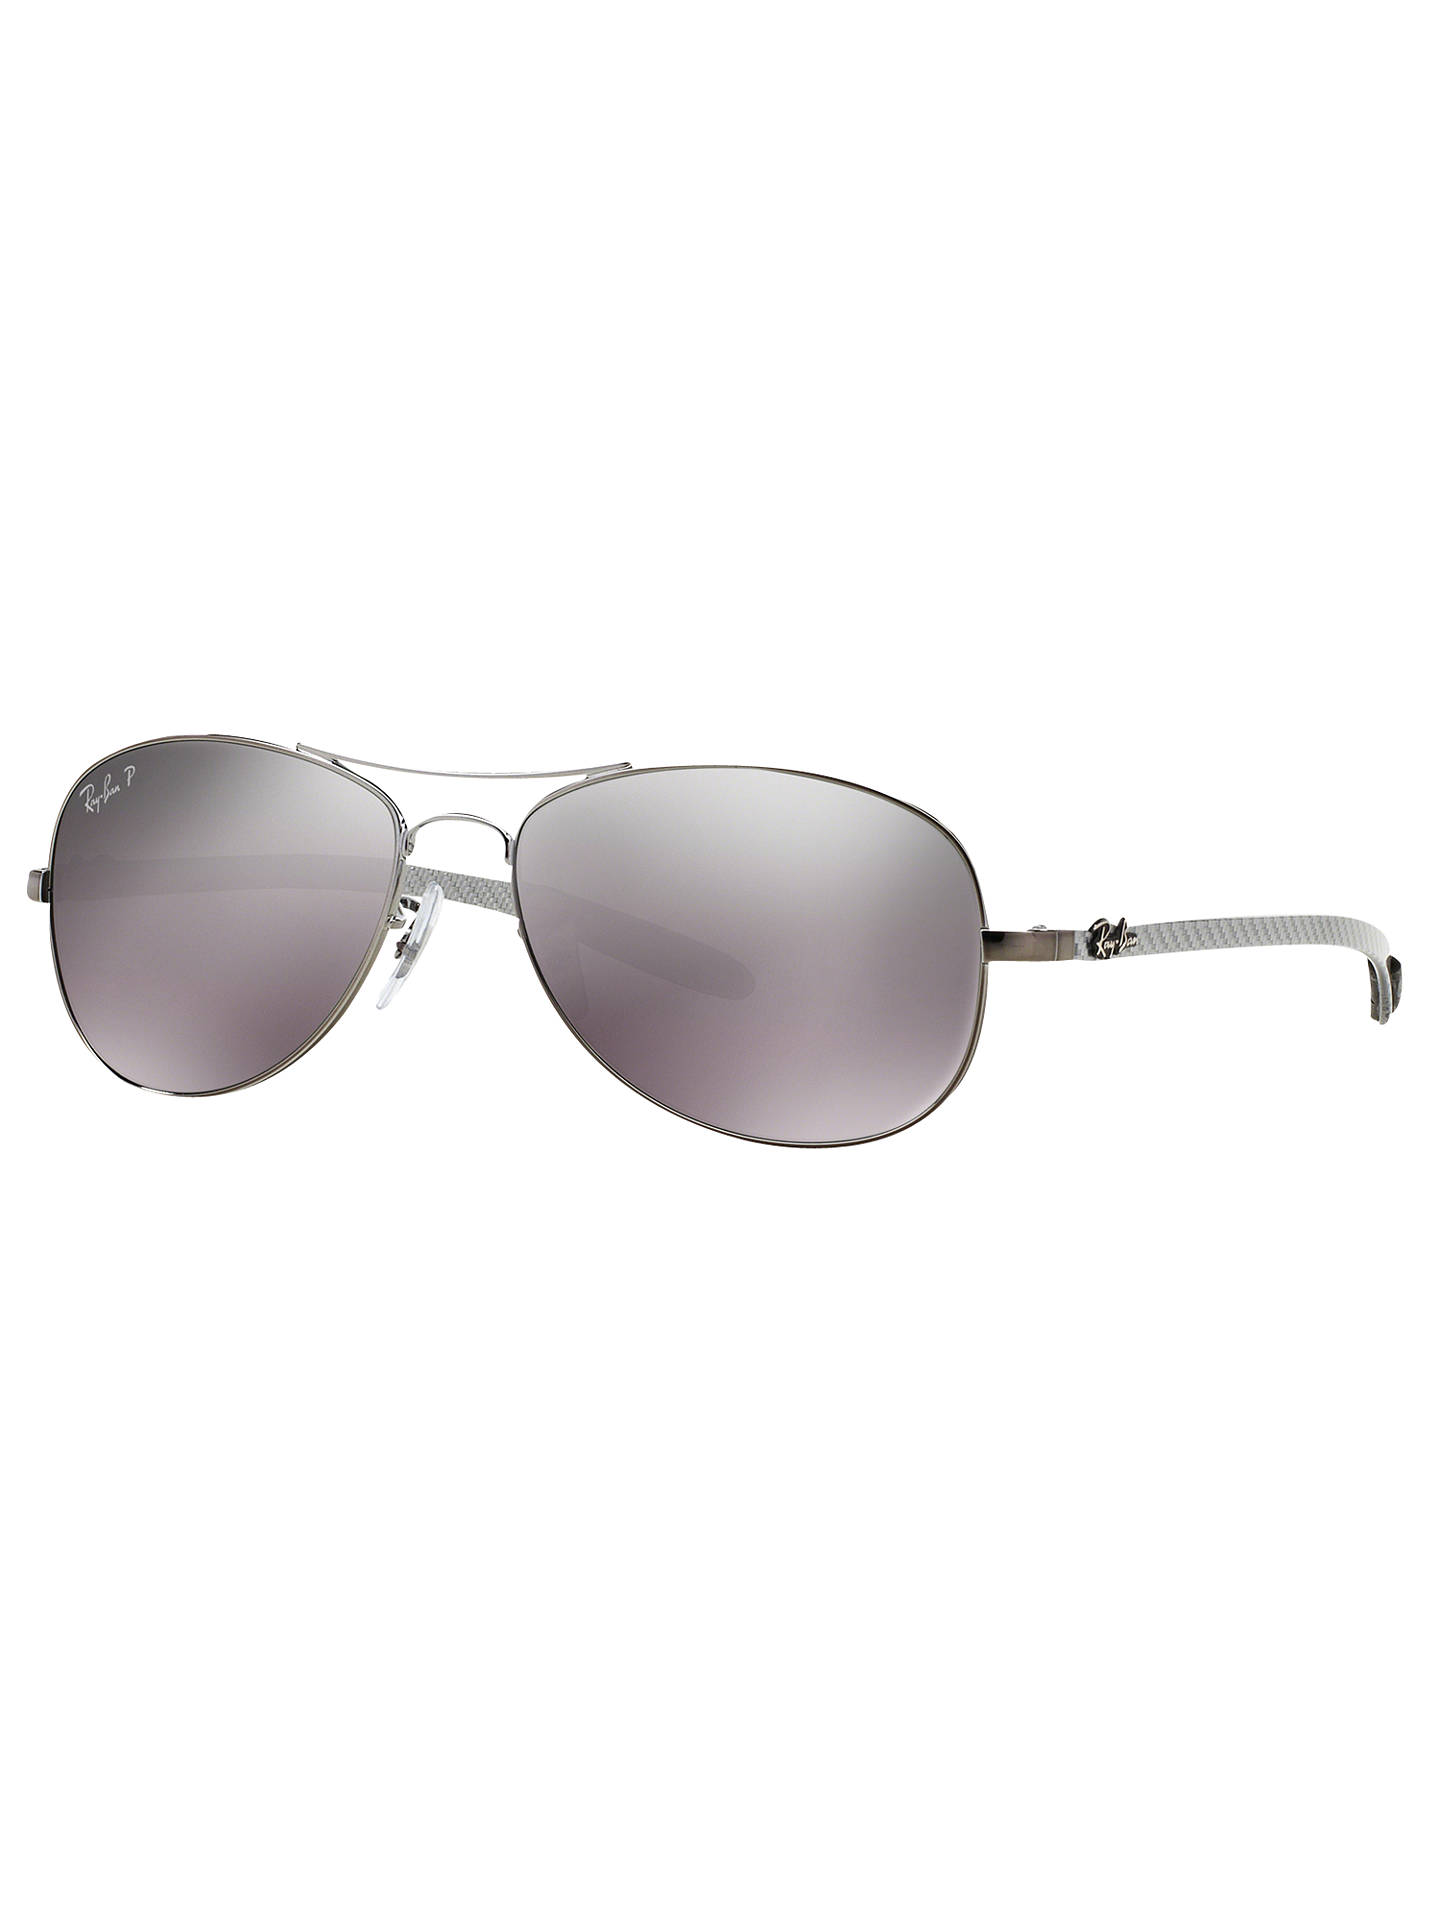 534281ee908 BuyRay-Ban RB8301 Polarised Aviator Sunglasses